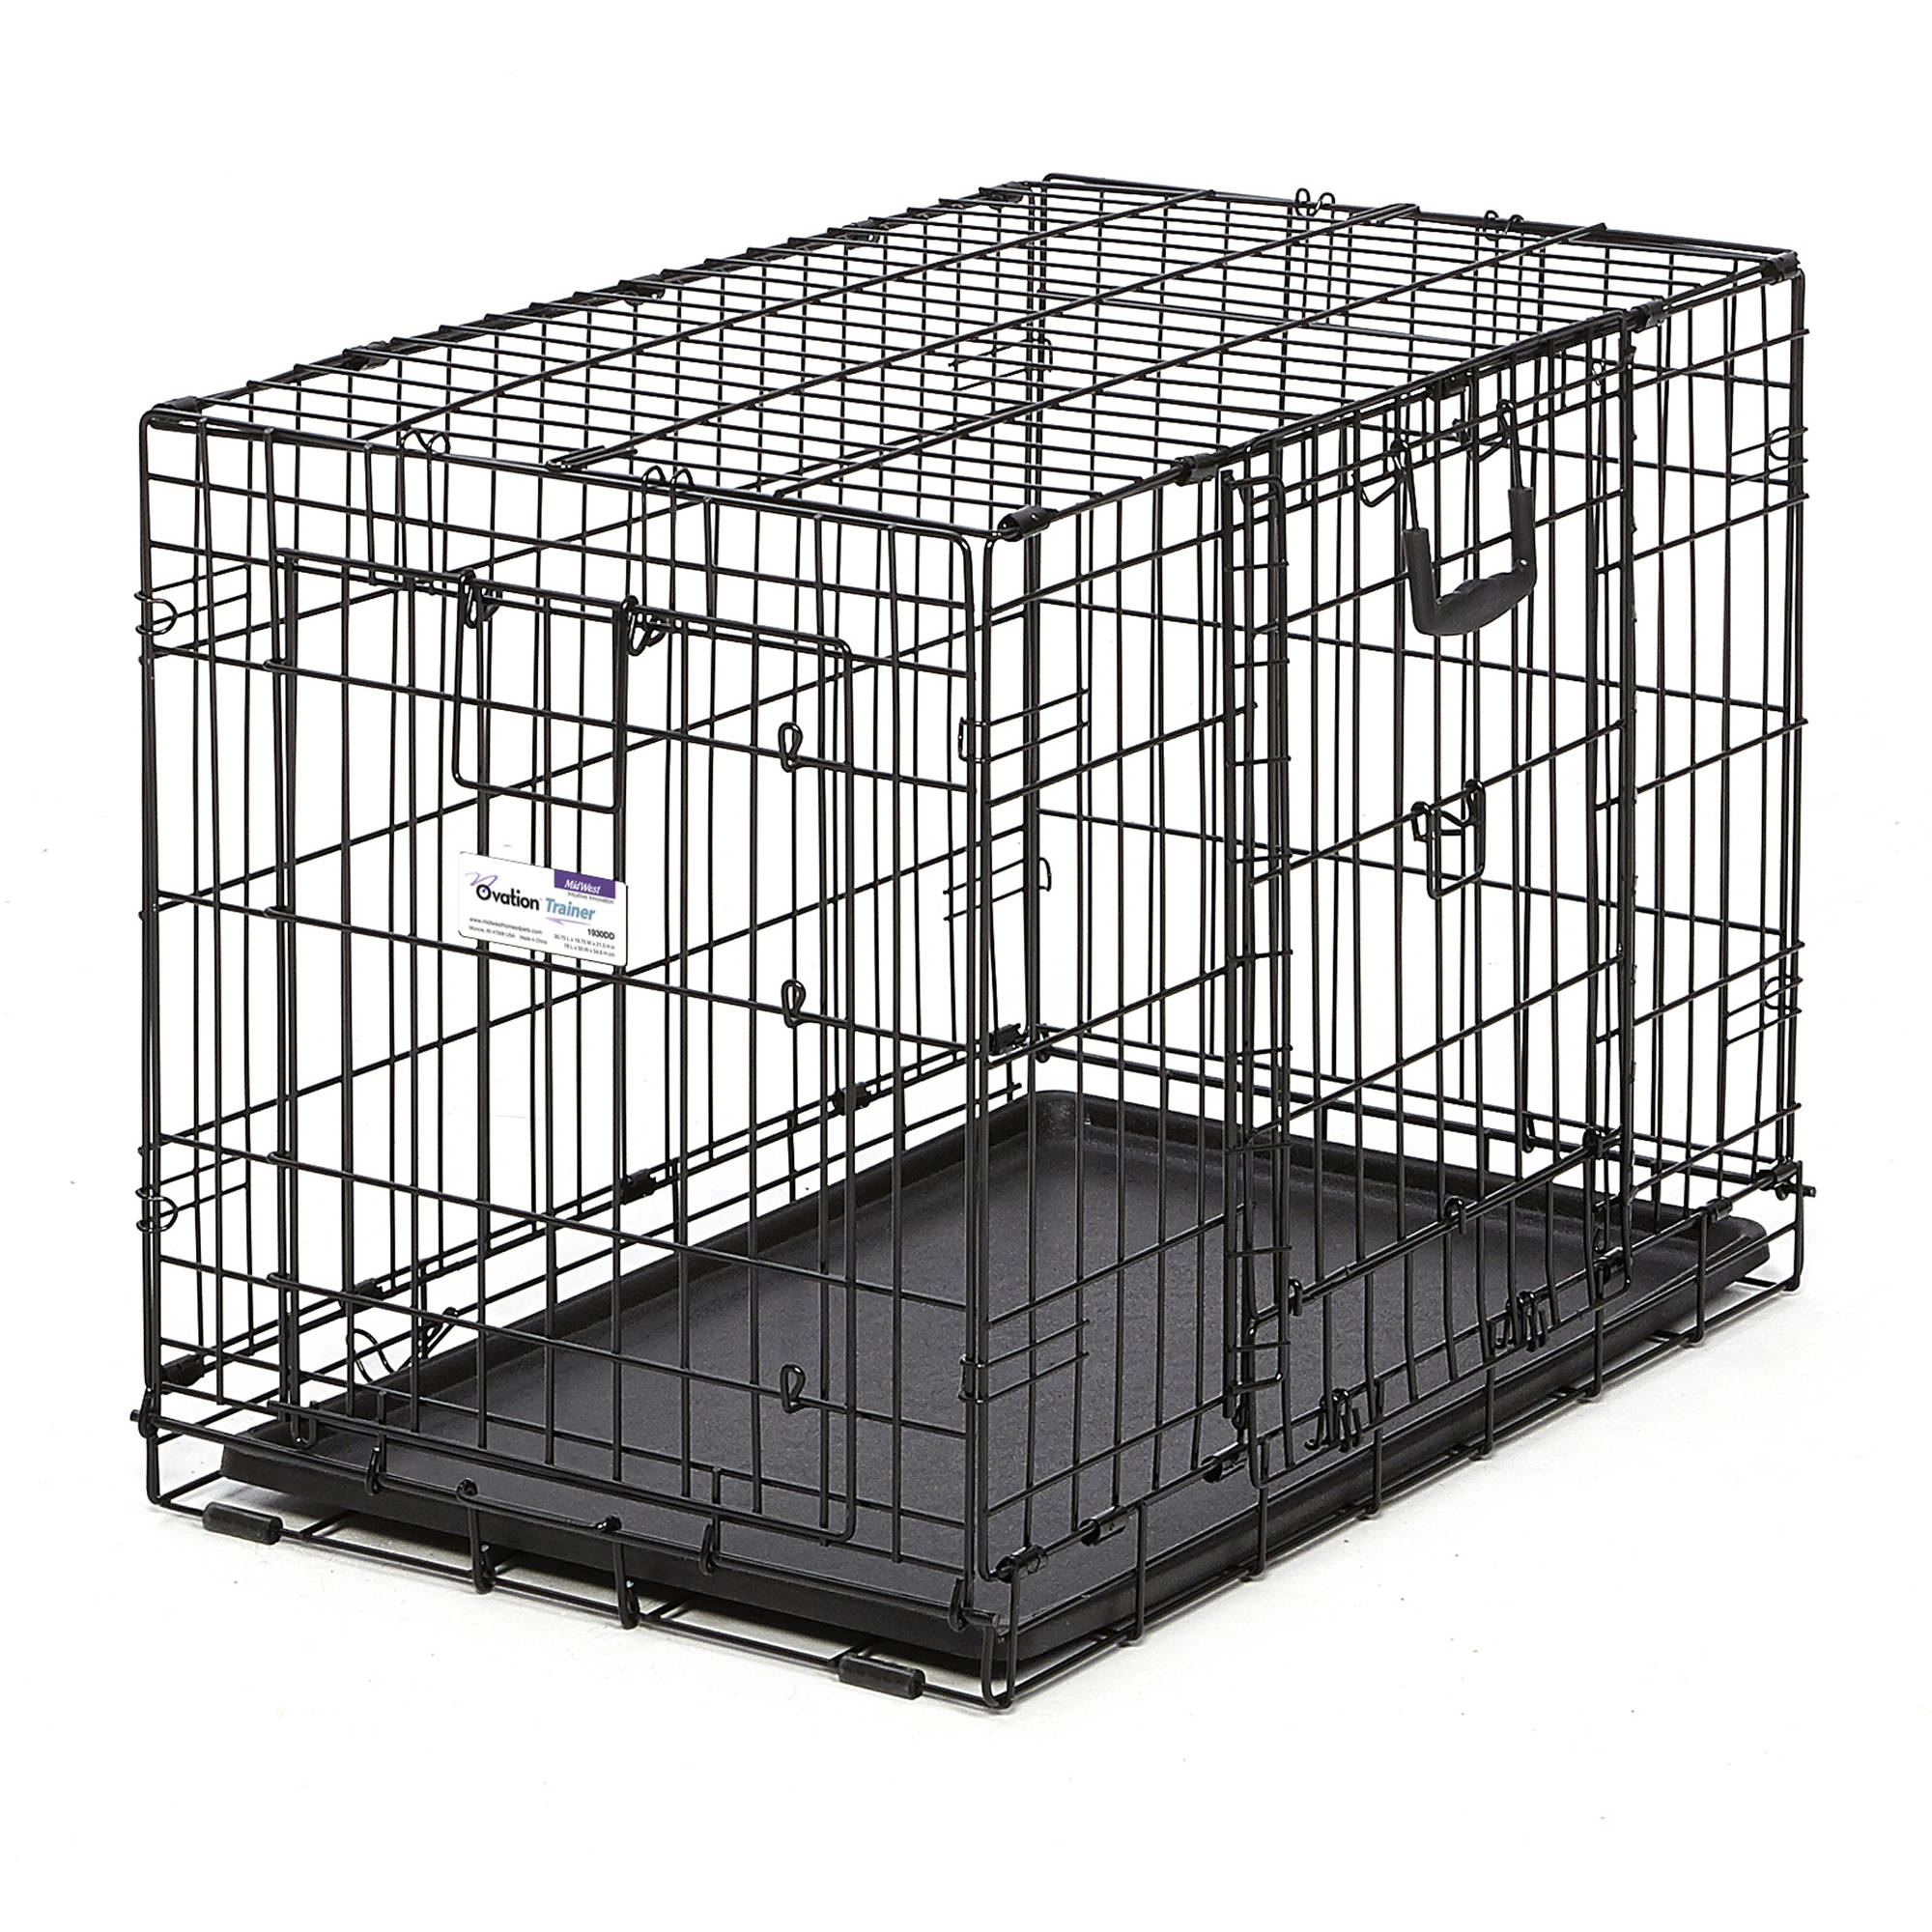 "Midwest 30"" Ovation Double Door Training Crate"